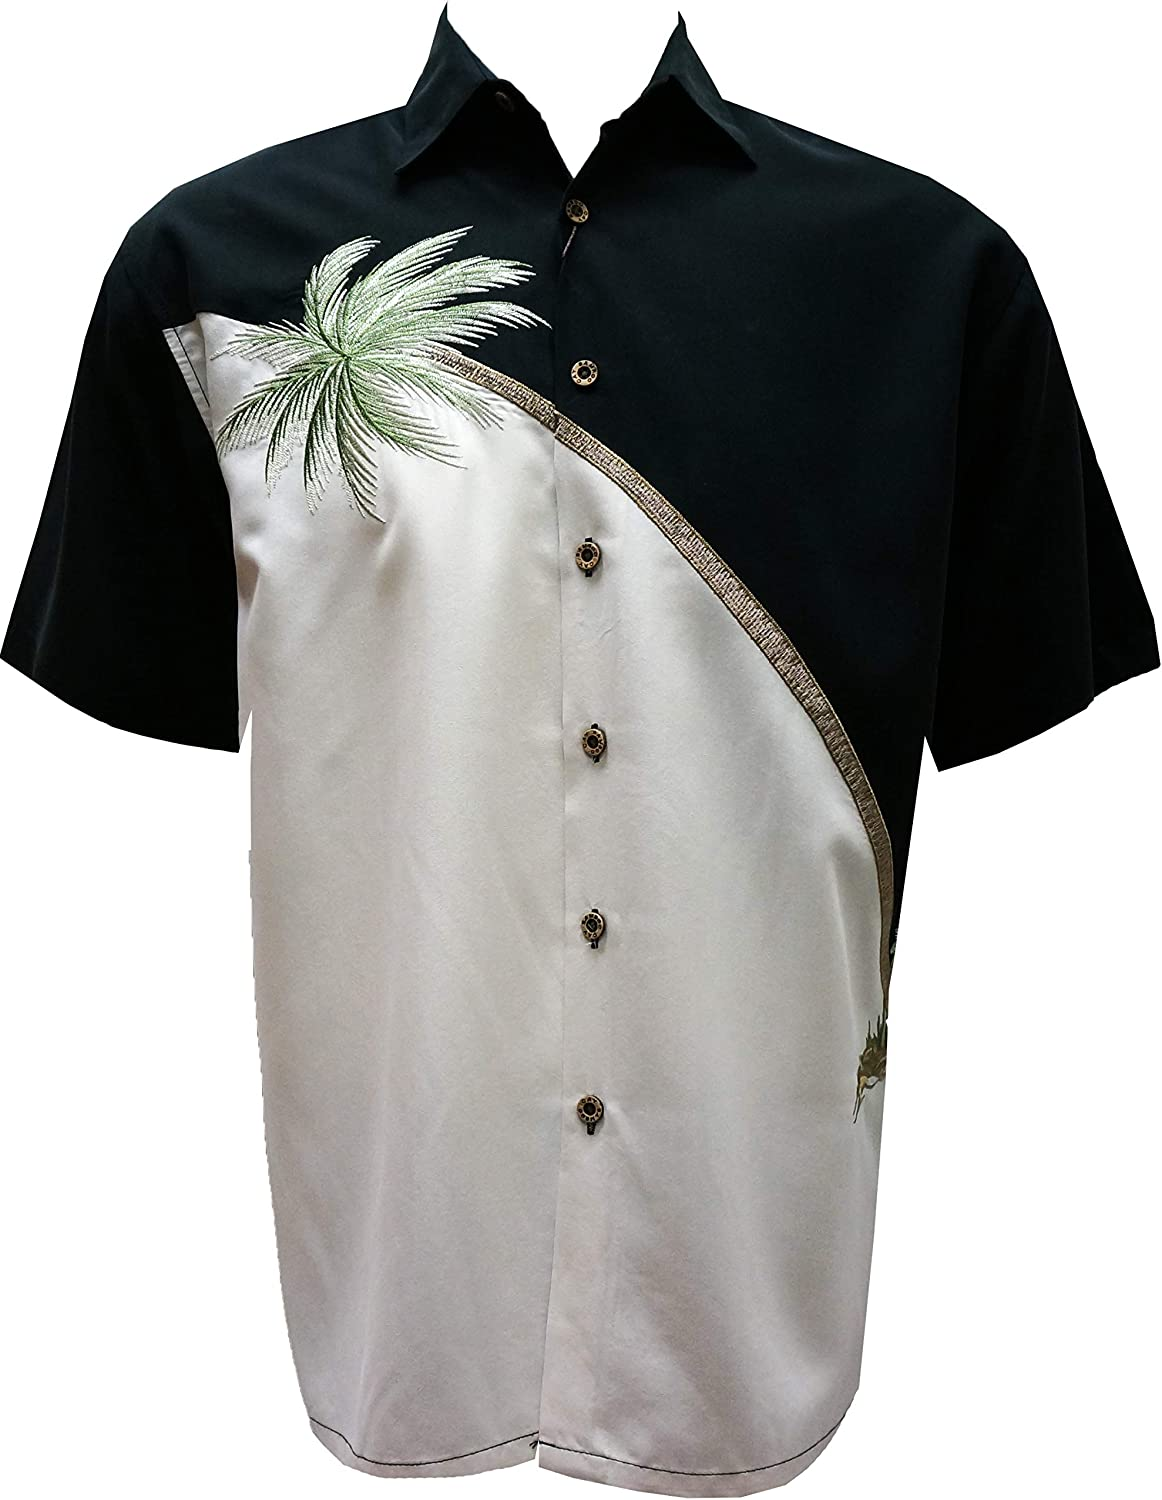 Bamboo Cay Mens Short Sleeve Hurricane Palm Casual Embroidered Woven Shirt